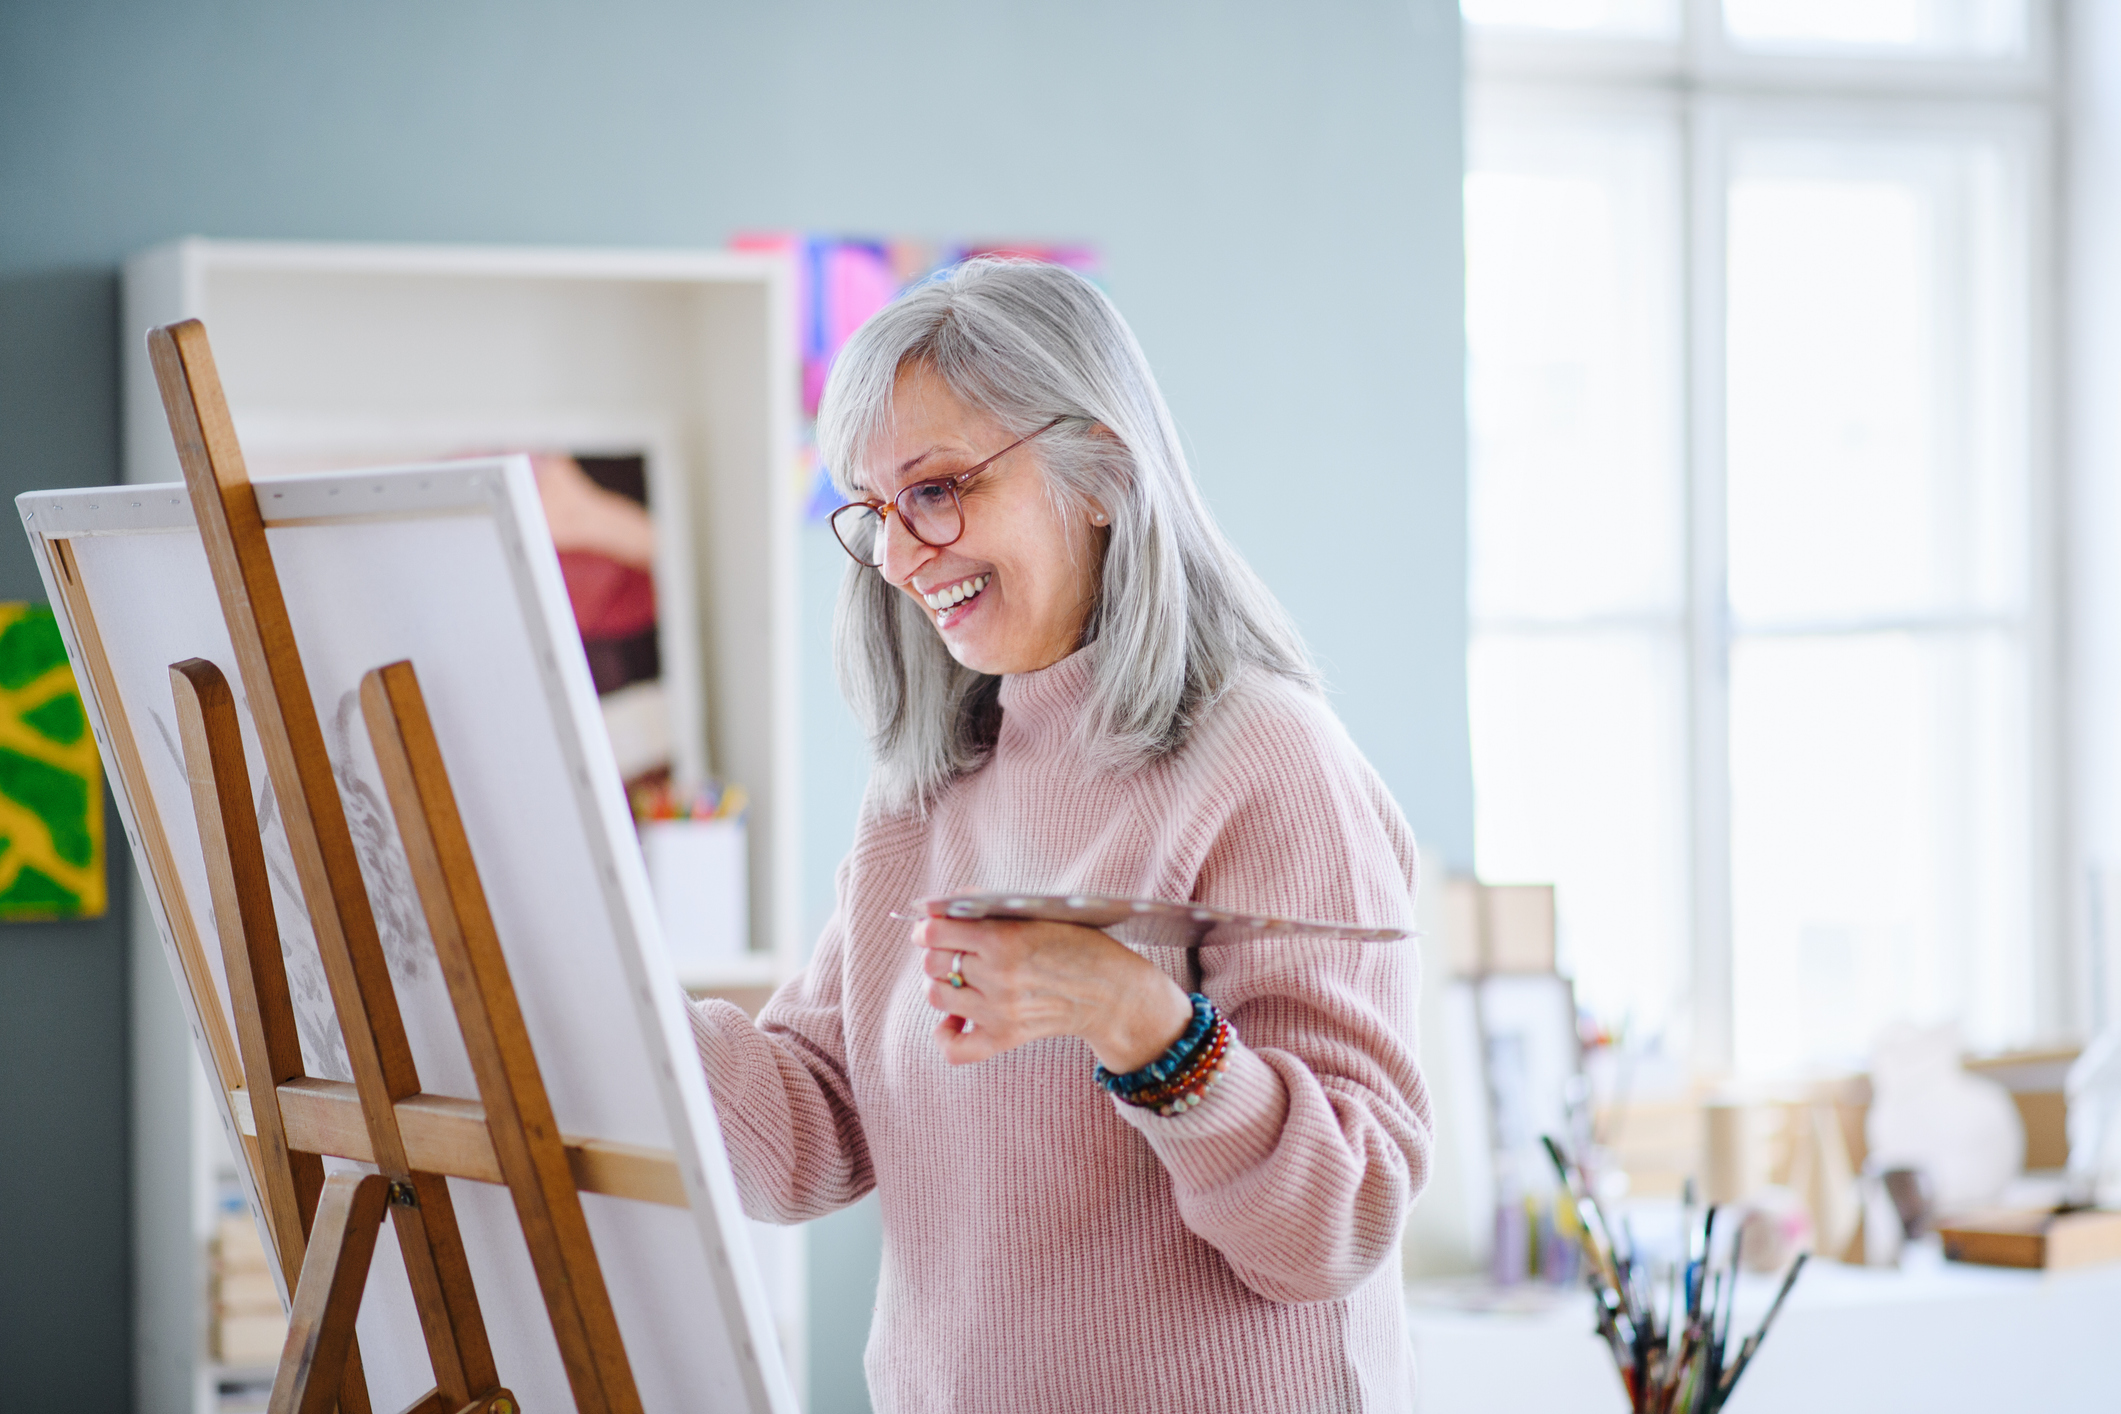 Senior woman painting pictures in art class.